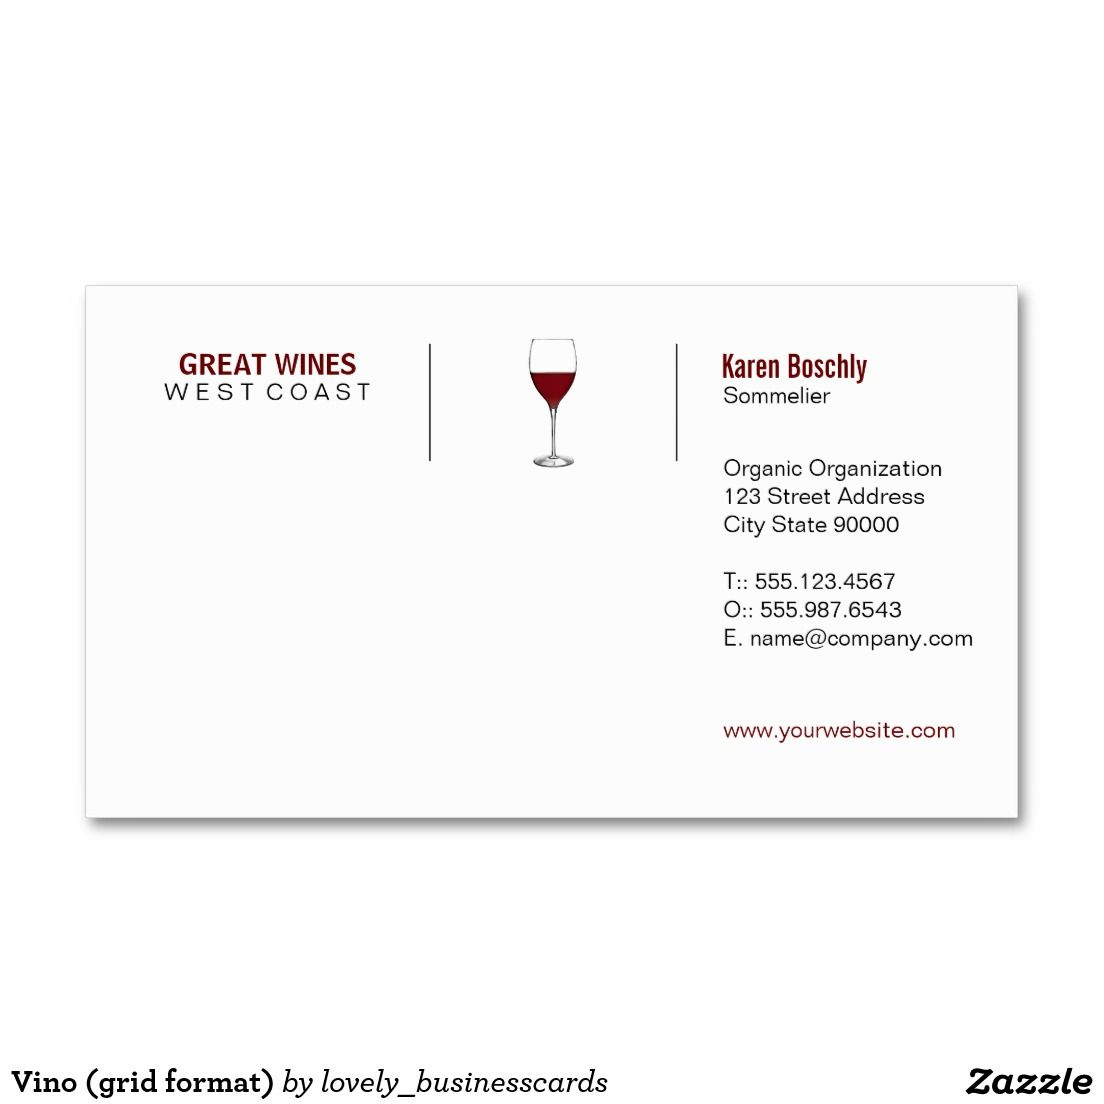 Vino grid format business card business cards business and vino grid format business card business cards business and support small business colourmoves